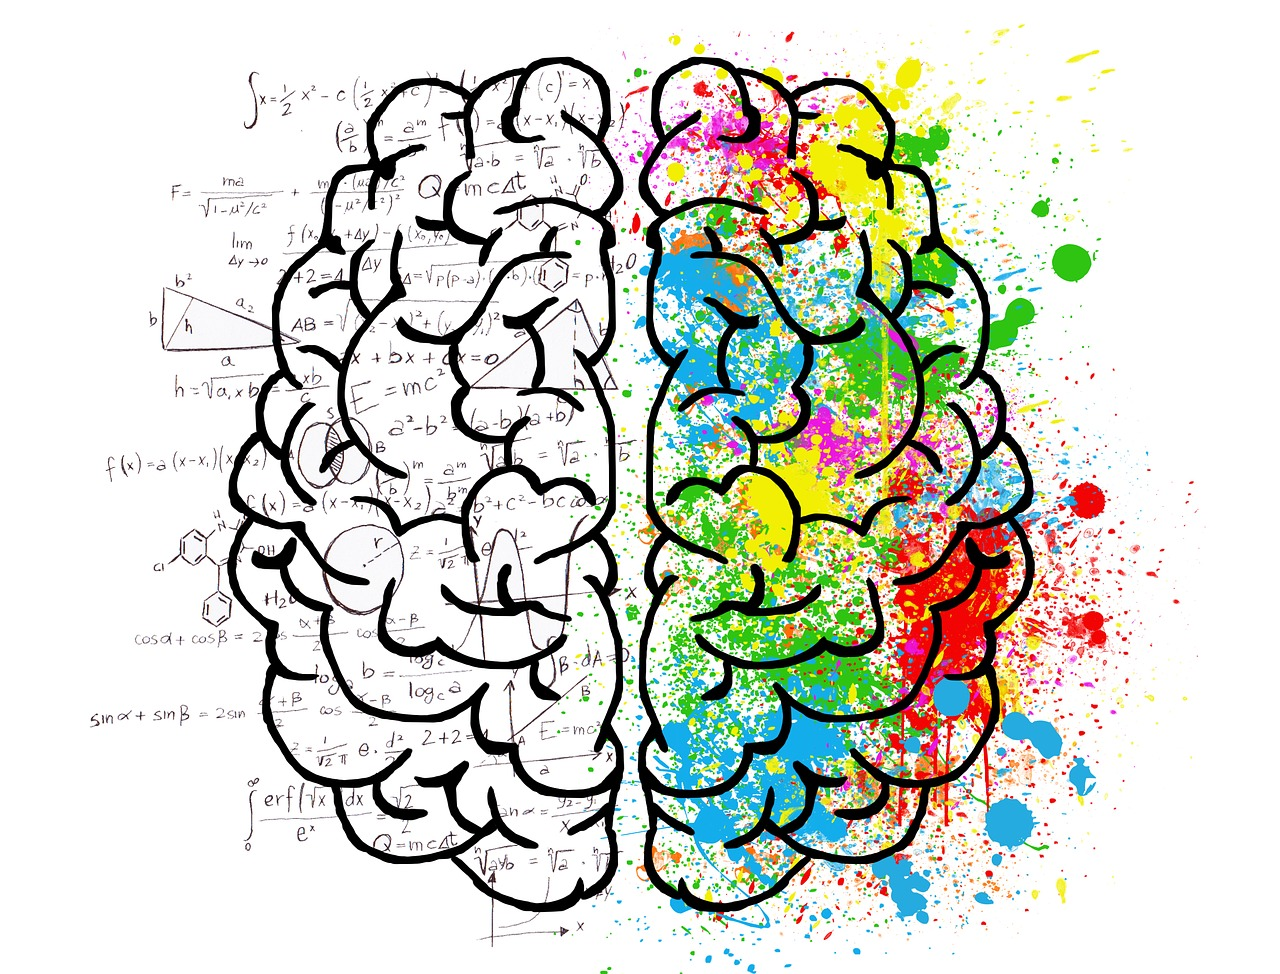 How Thinking affects brain chemistry